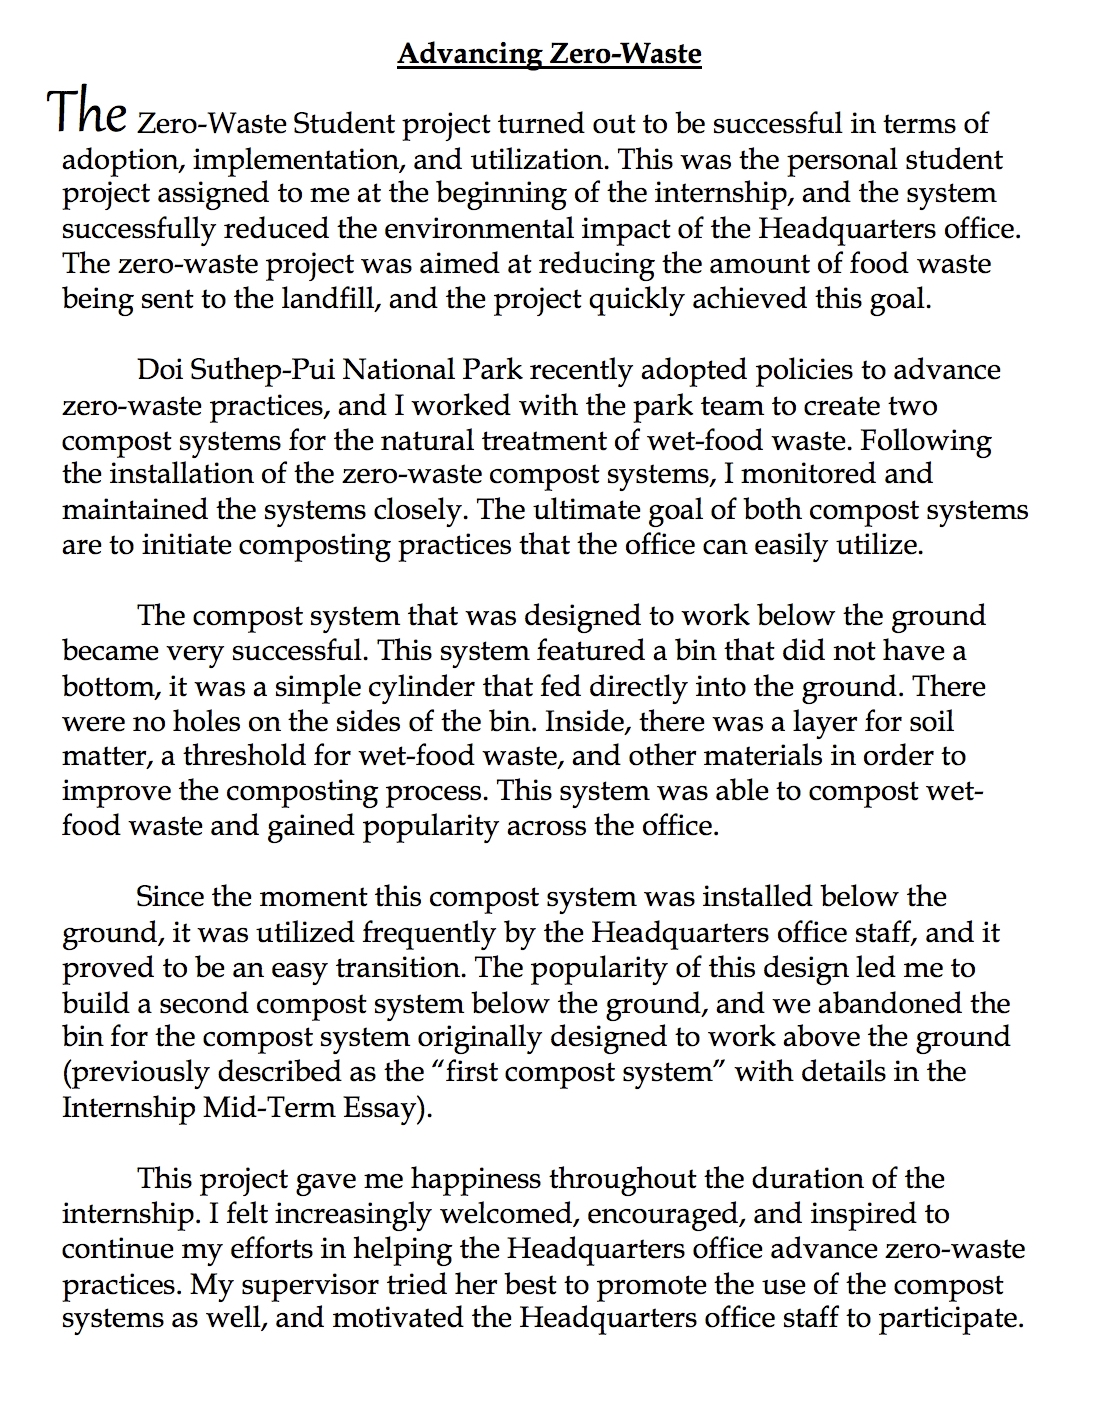 Final Intern Essay pg3.jpg